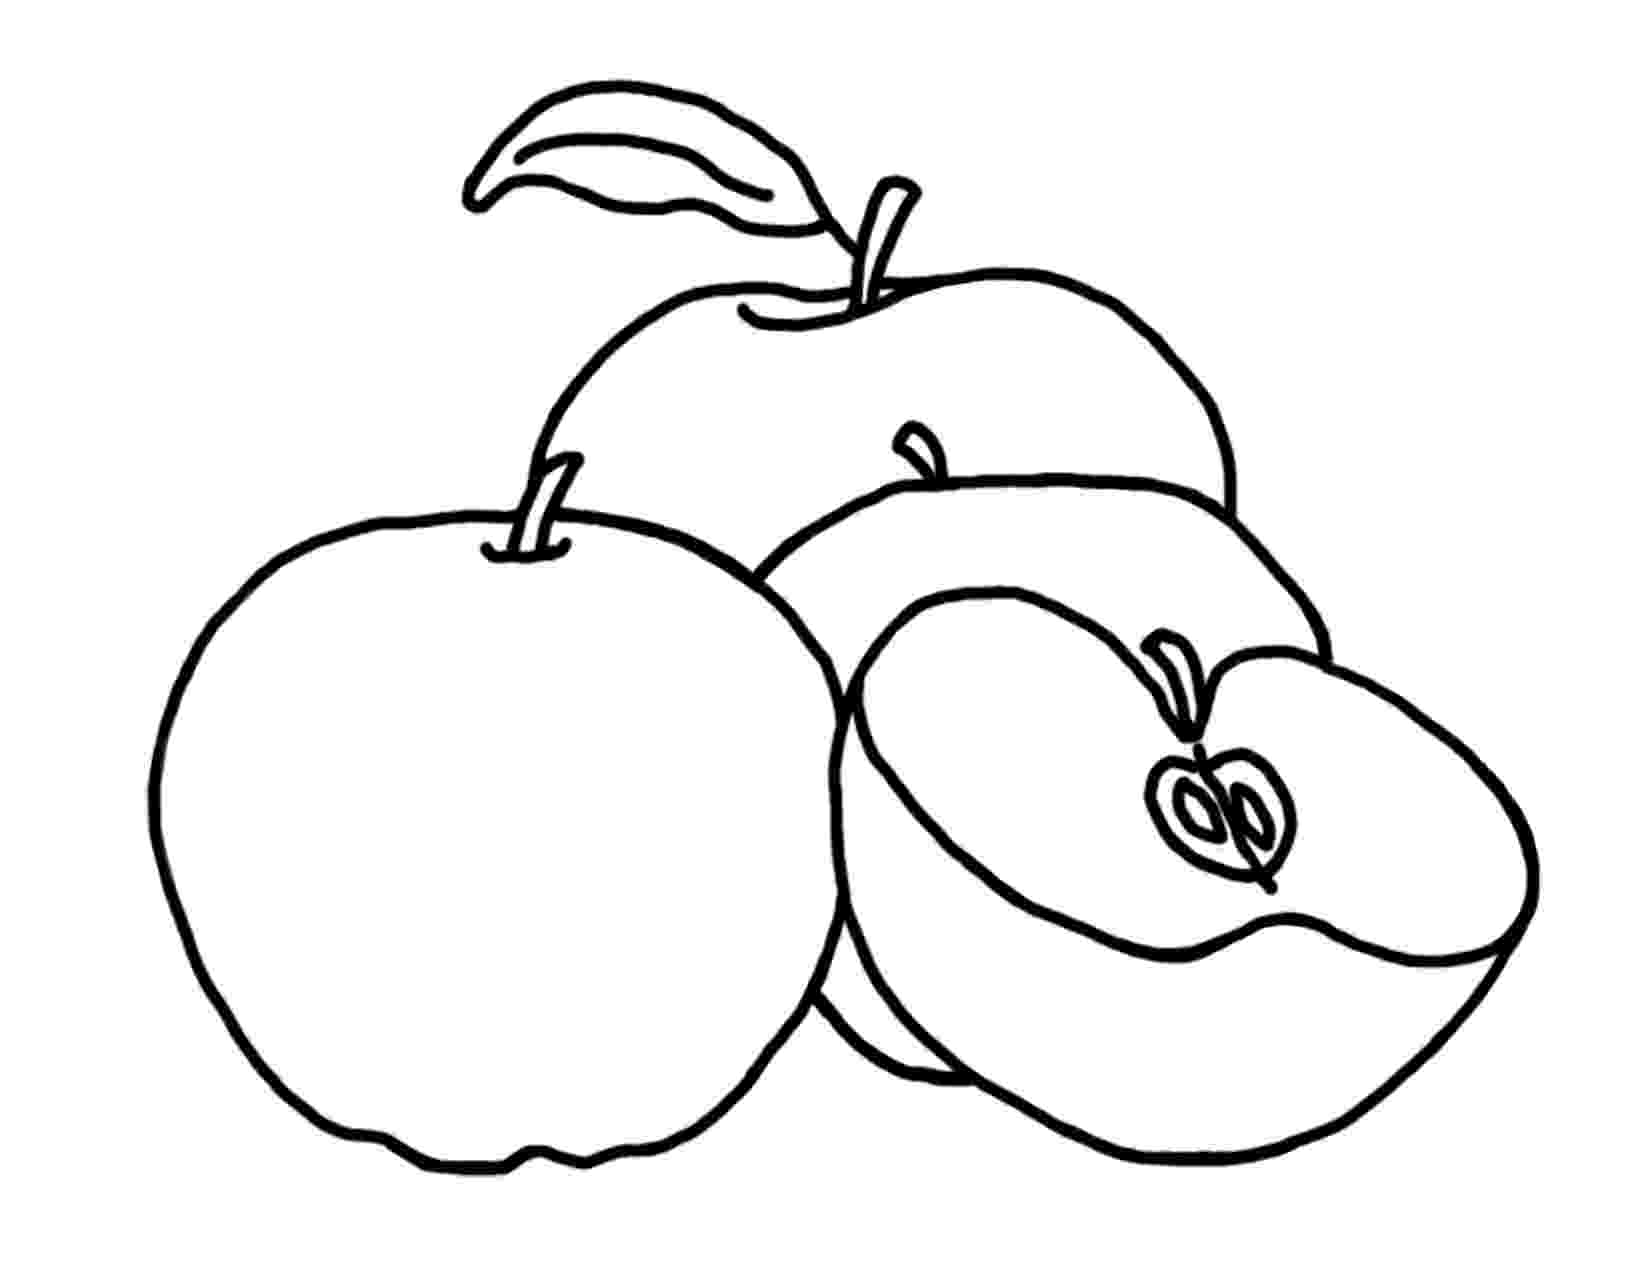 pictures of apples for kids two apple fruits coloring pages simple for kids printable for kids pictures of apples